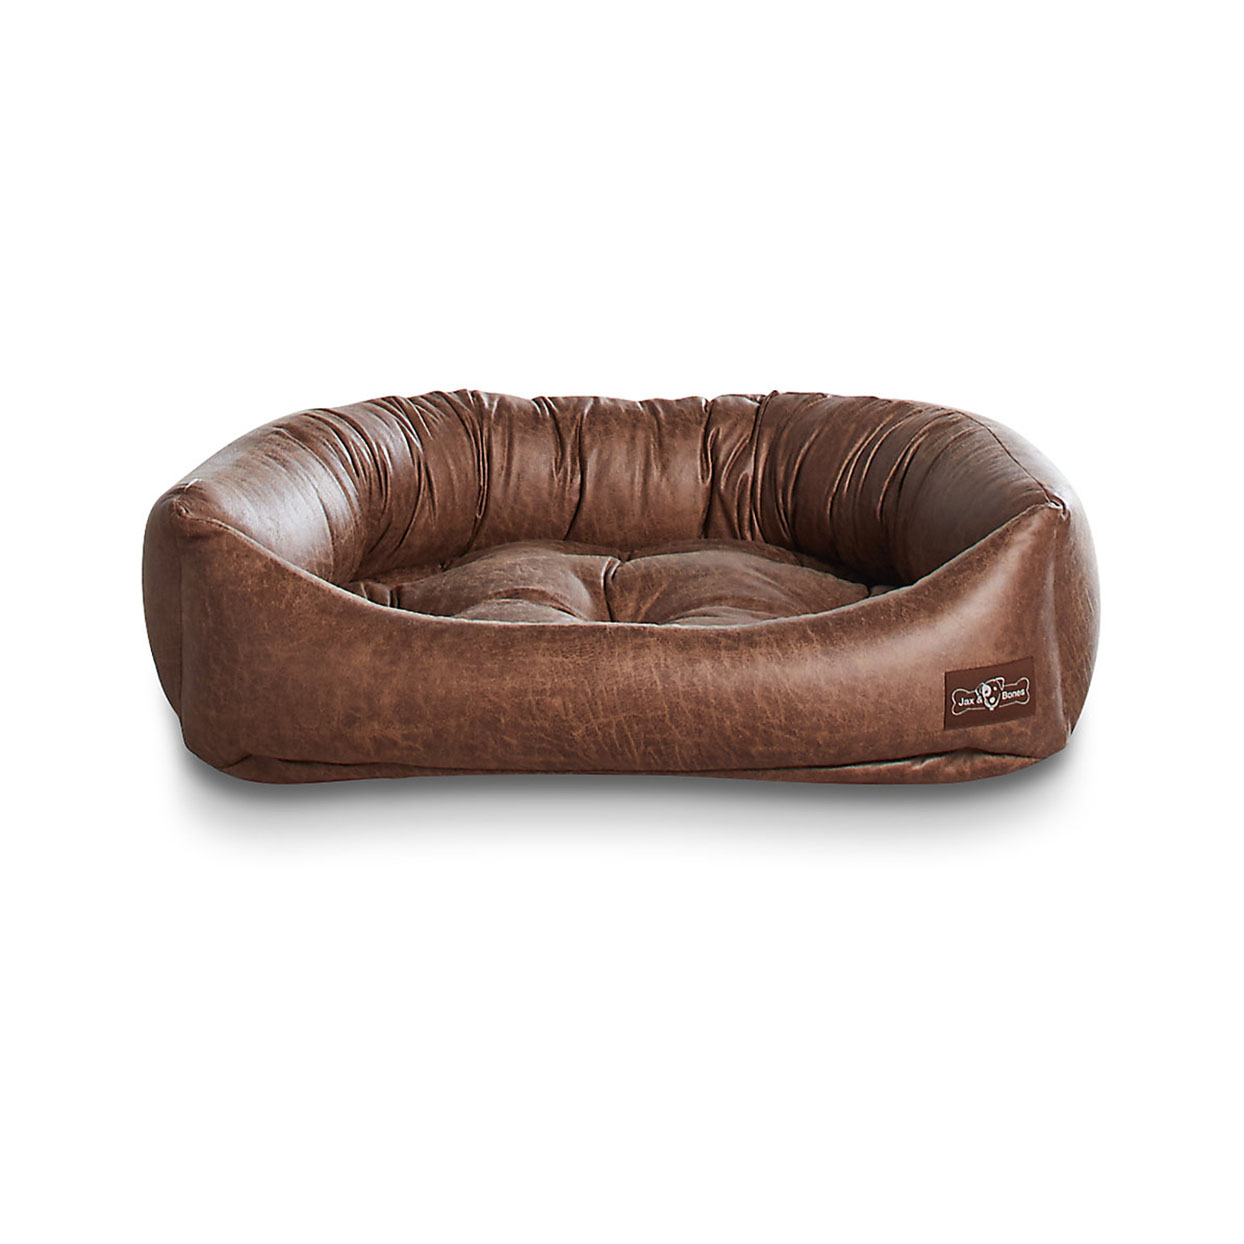 leather dog couch